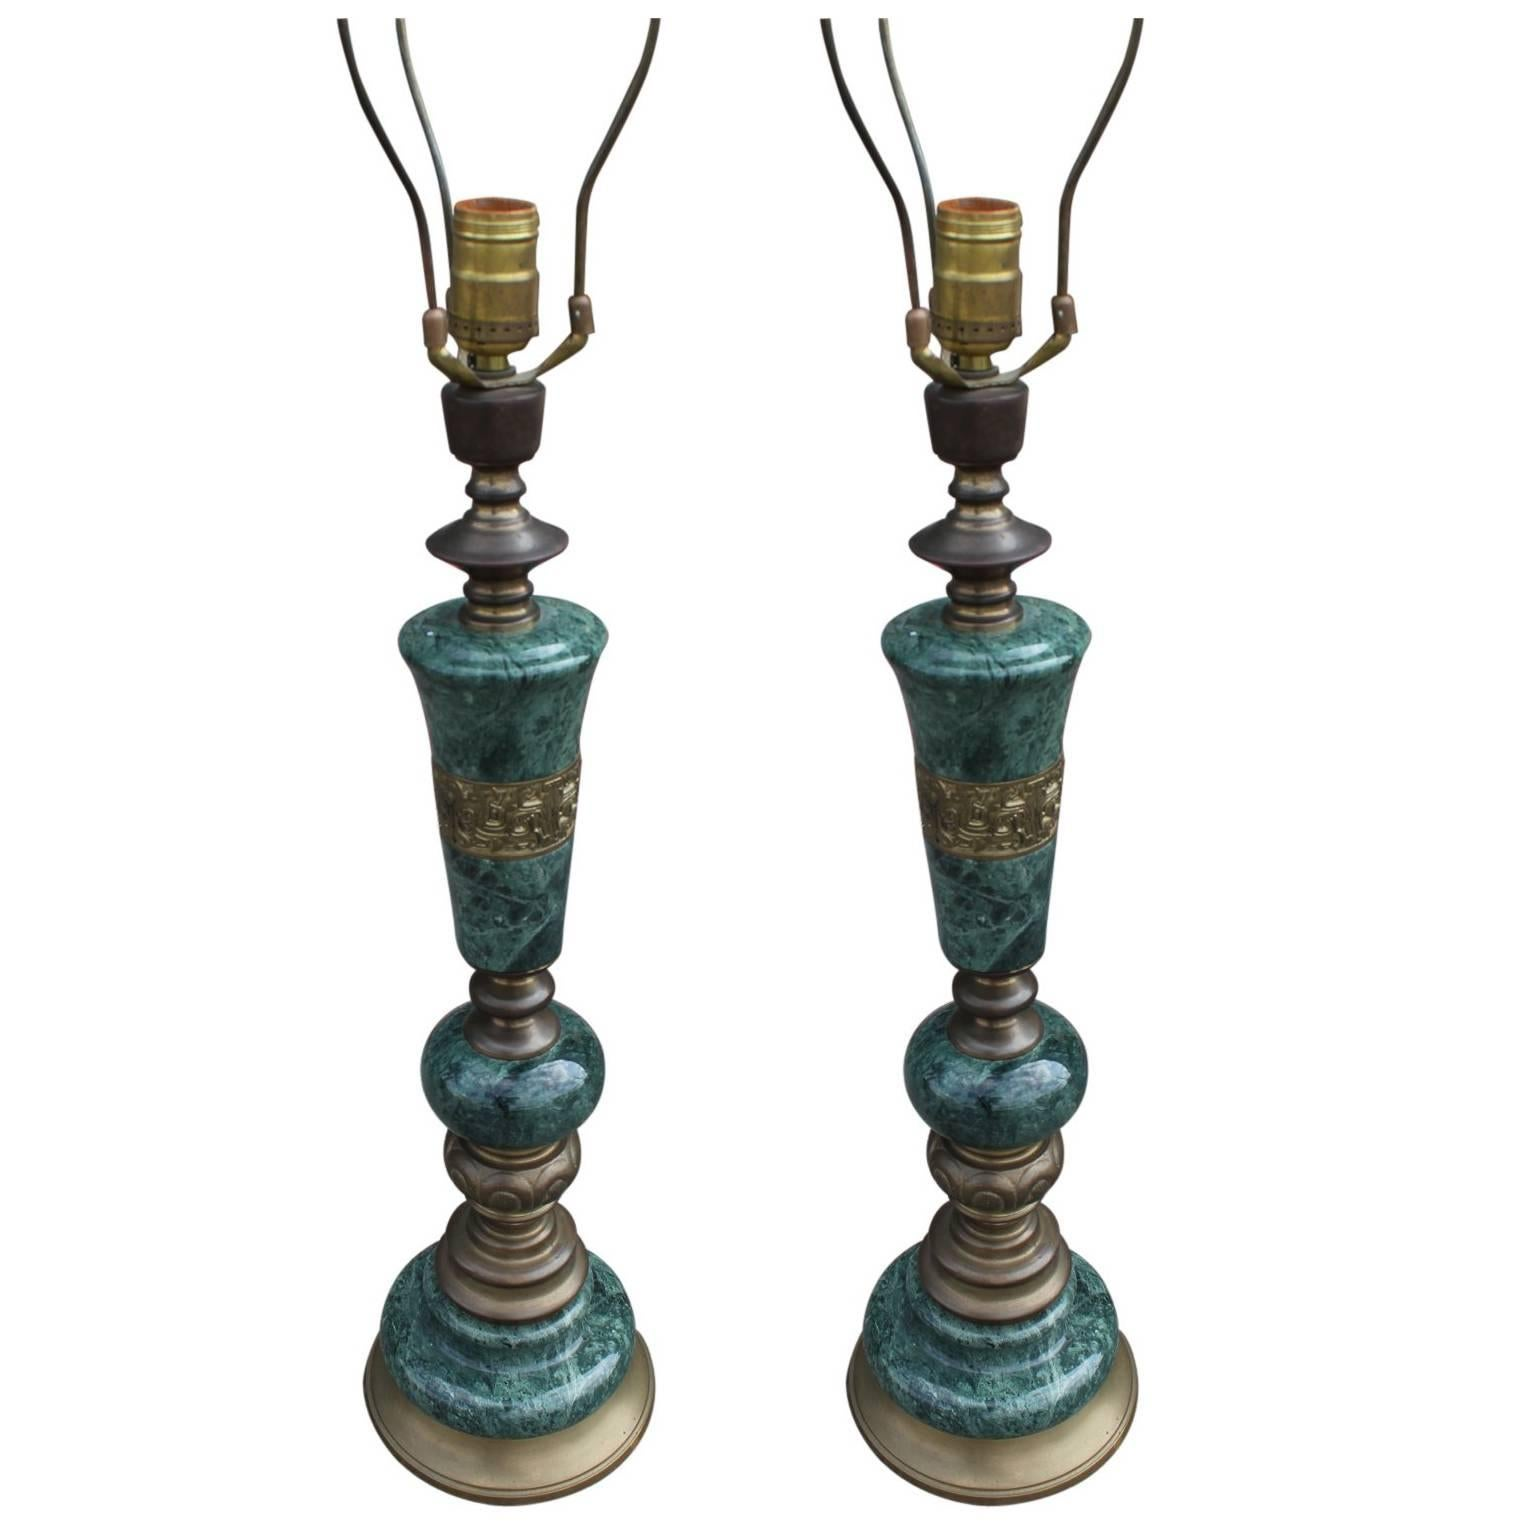 Pair Of Green Marble And Brass Modern Table Lamps For Sale At 1stdibs